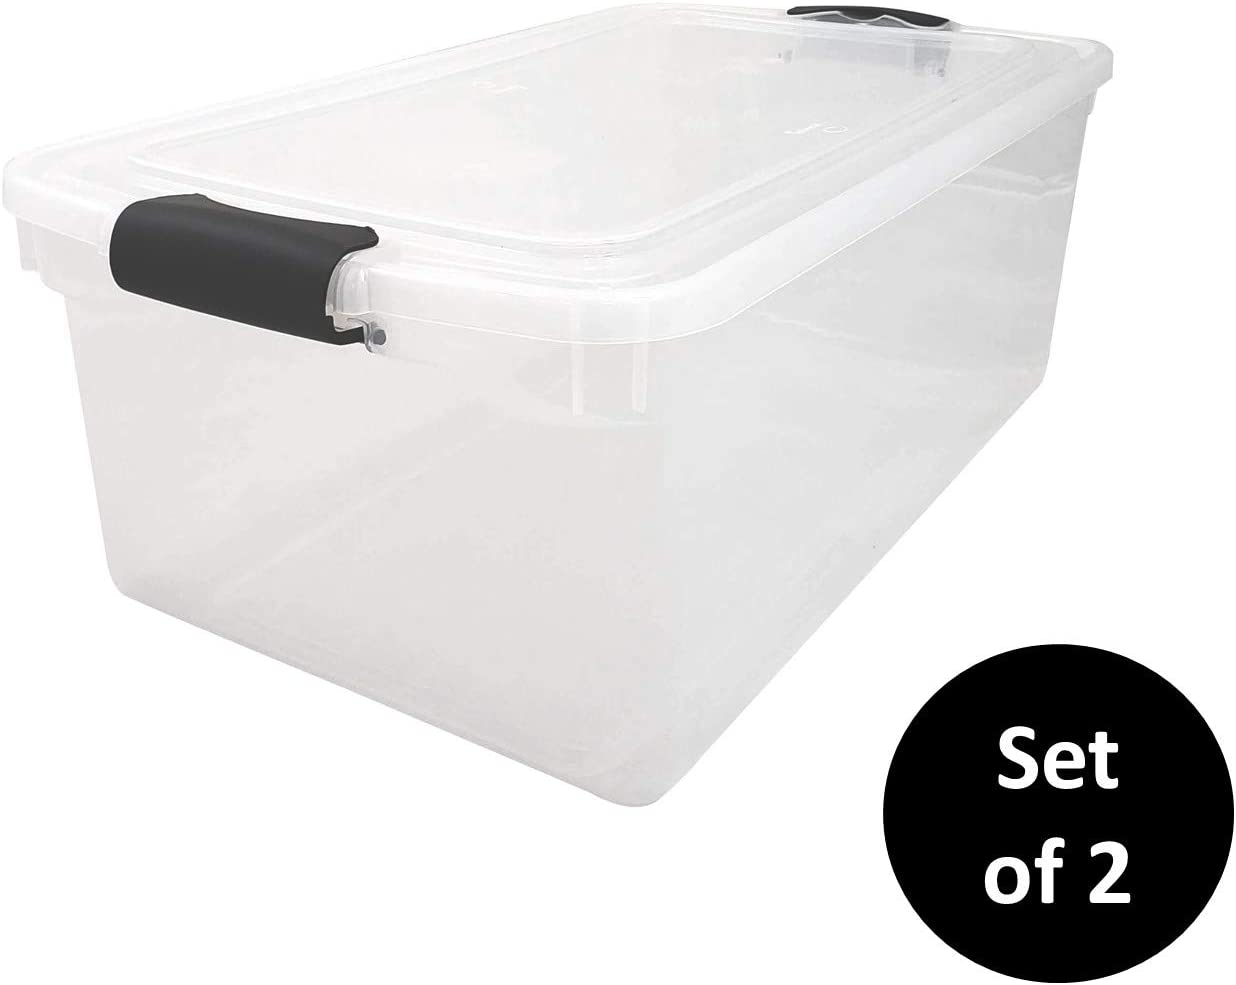 HOMZ 3442CLGRDC.02 Clear Storage Container with Lid, 66 Quart, Grey, 2 Pack